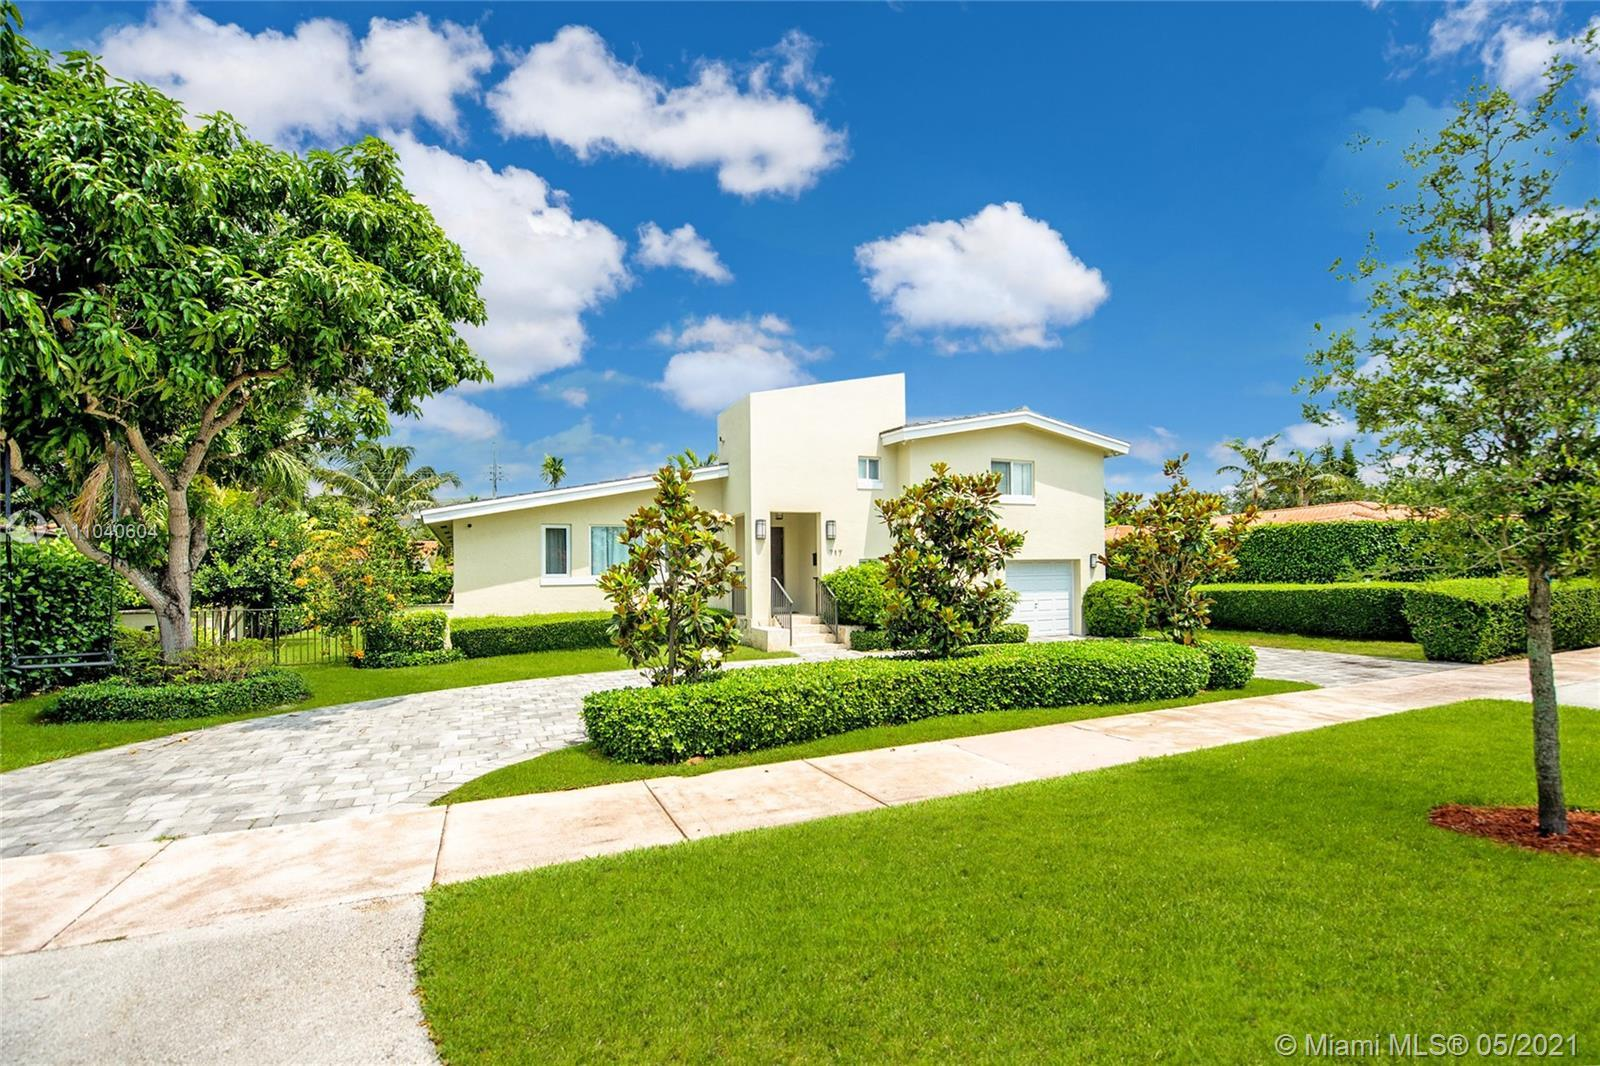 Lovely home on a quiet, tree-lined street close to UM & world-class Coral Gables shopping & dining.